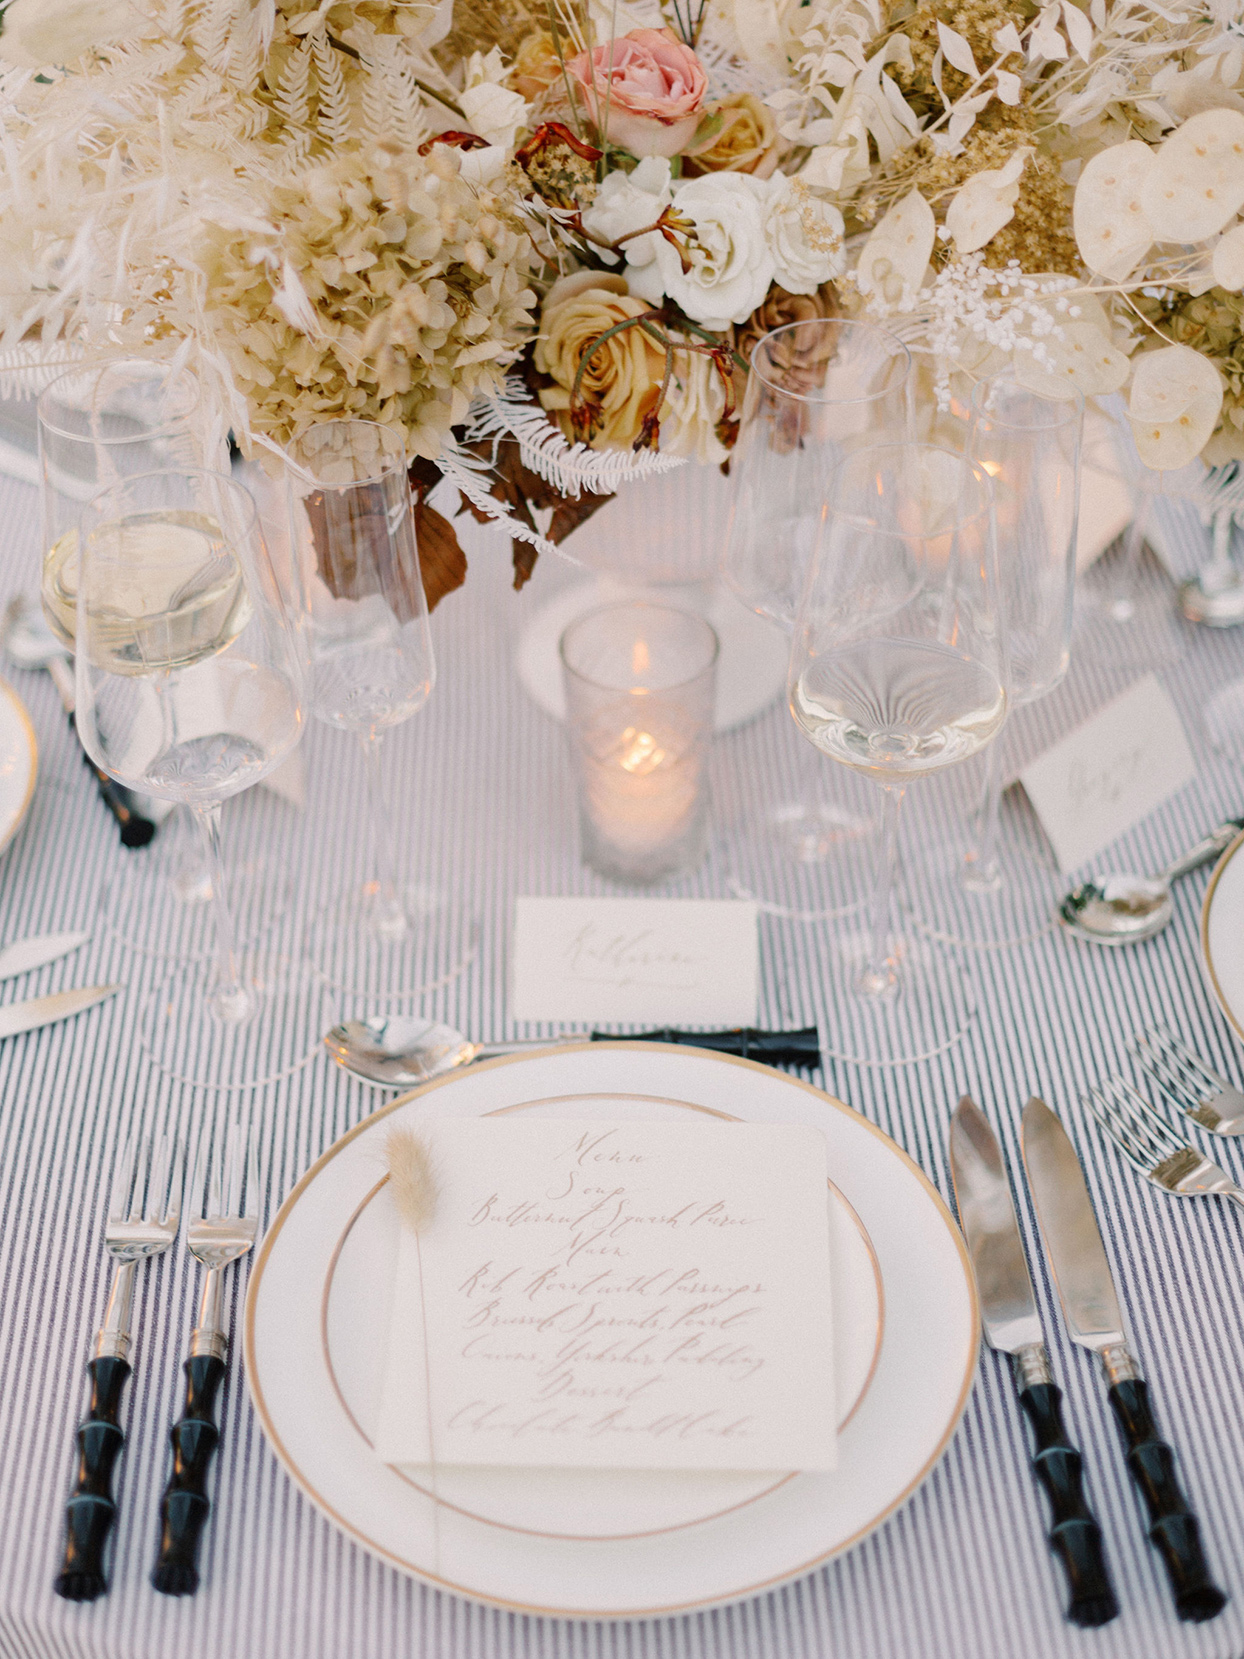 megan parking wedding elegant place settings at reception